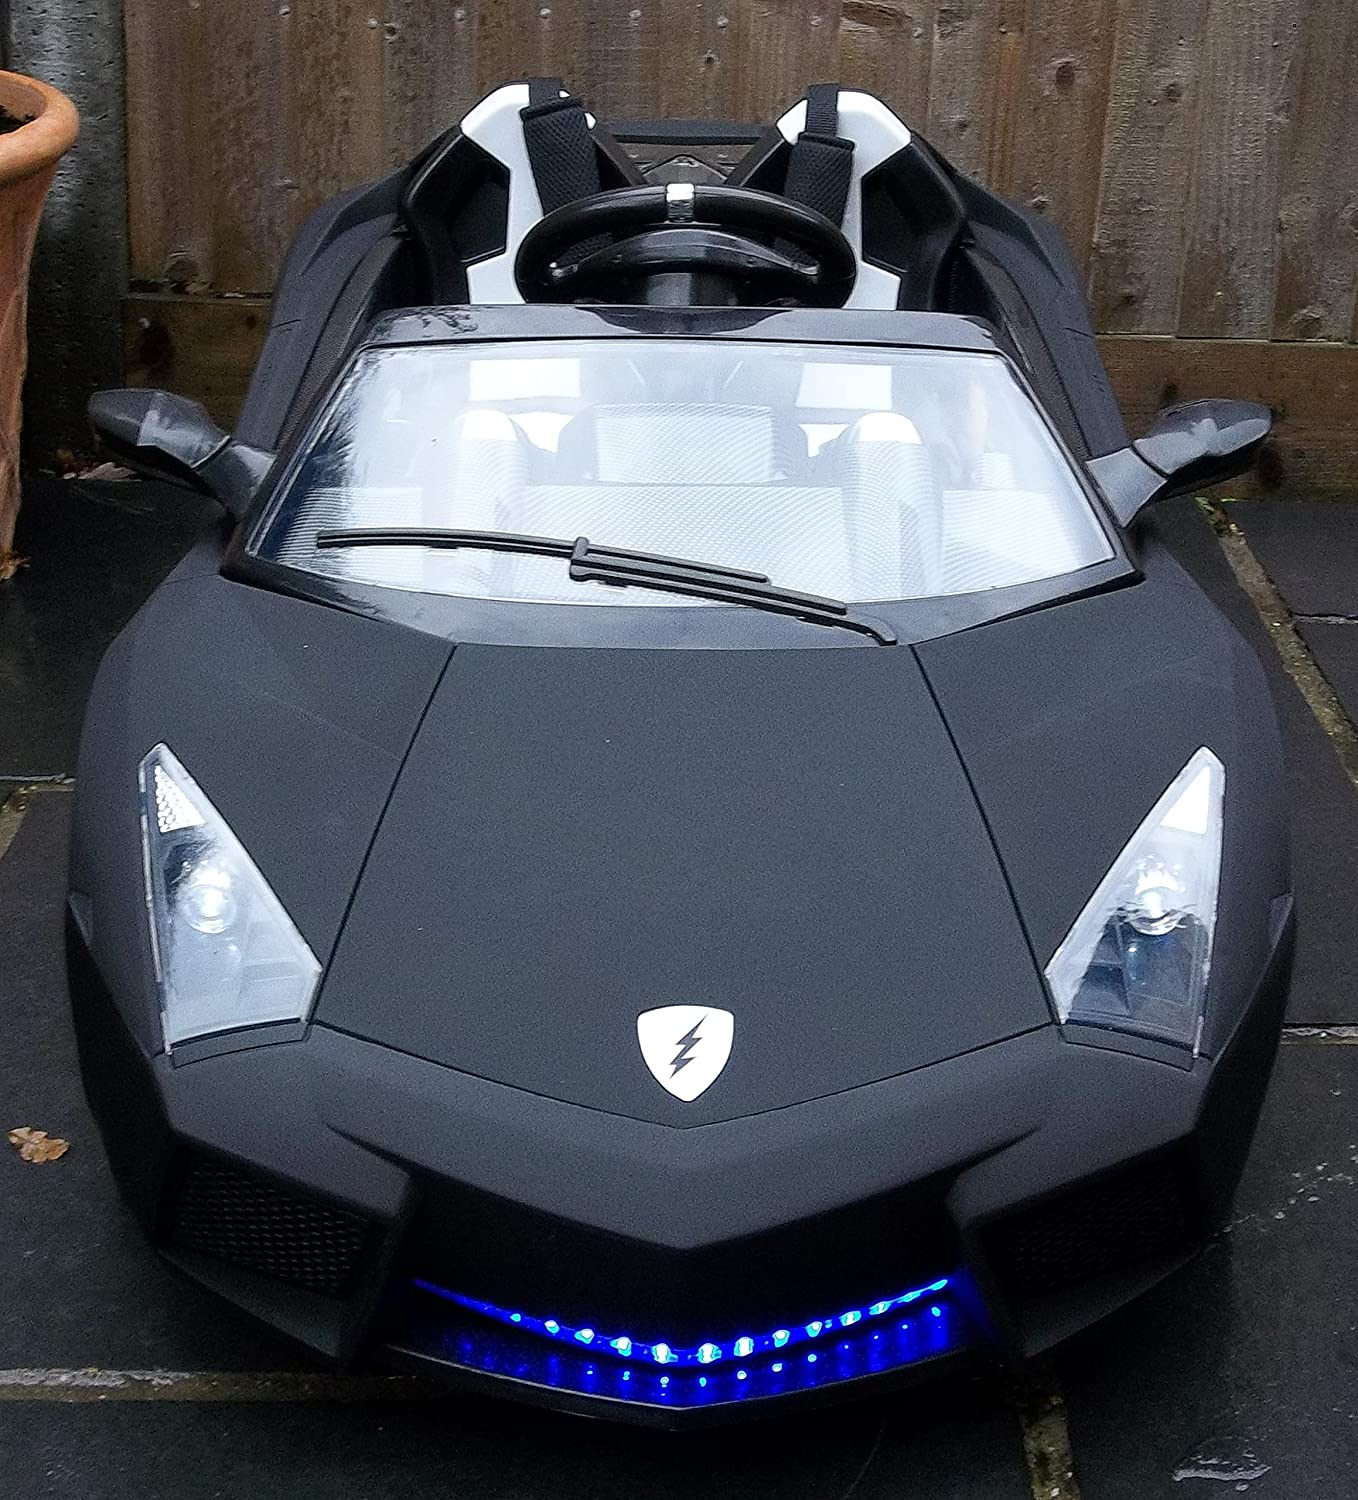 seater united superveloce uae price cars arab one car in emirates aventador new lamborghini